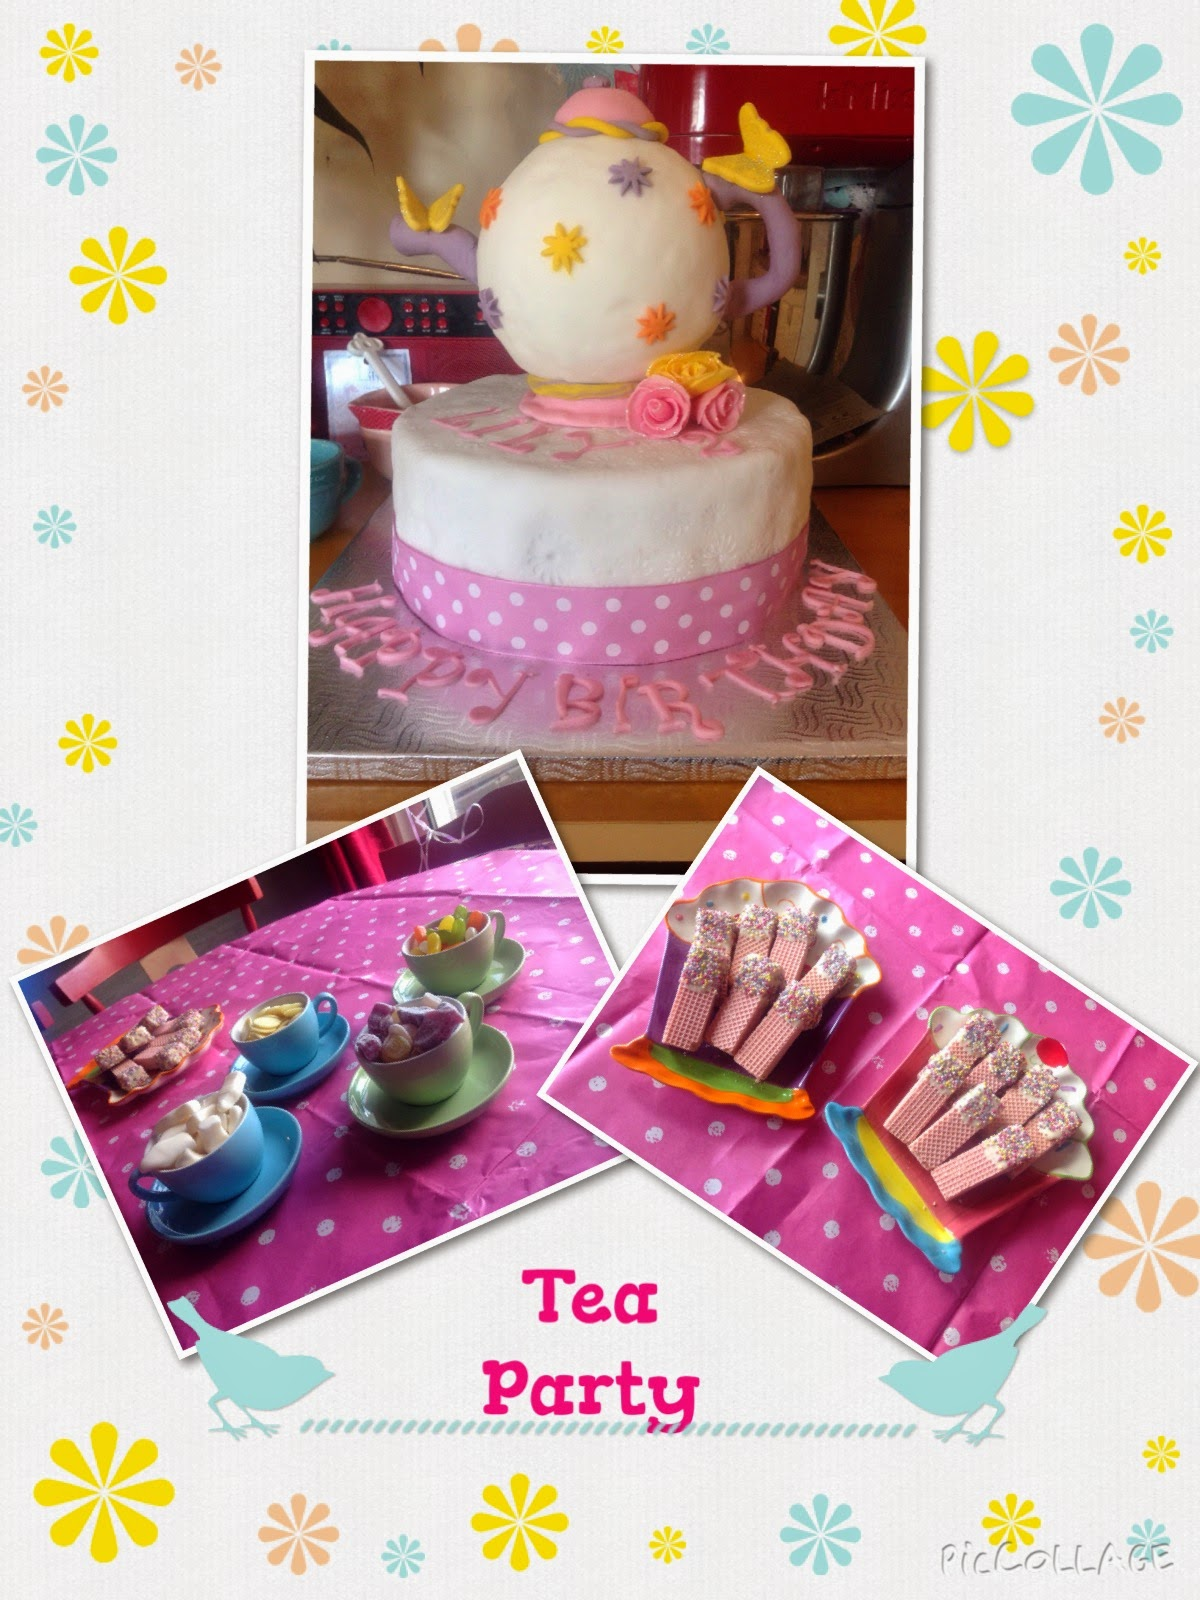 cupcakes, bettycroker, tea party, homestoreandmore, tesco, asda, decobake